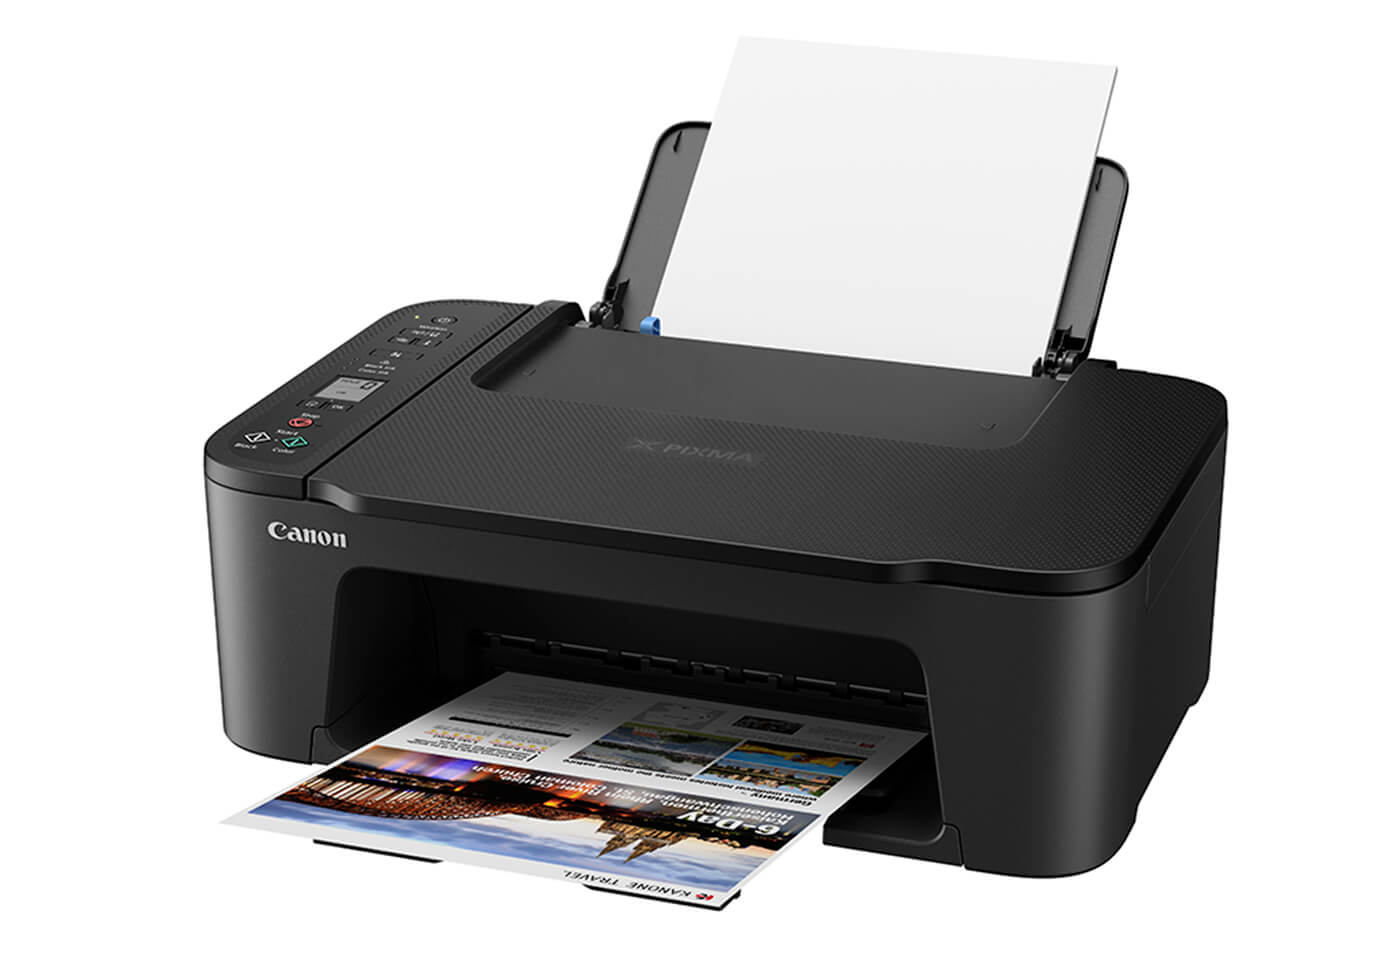 Side profile image of PIXMA HOME TS3460 printer with tray open